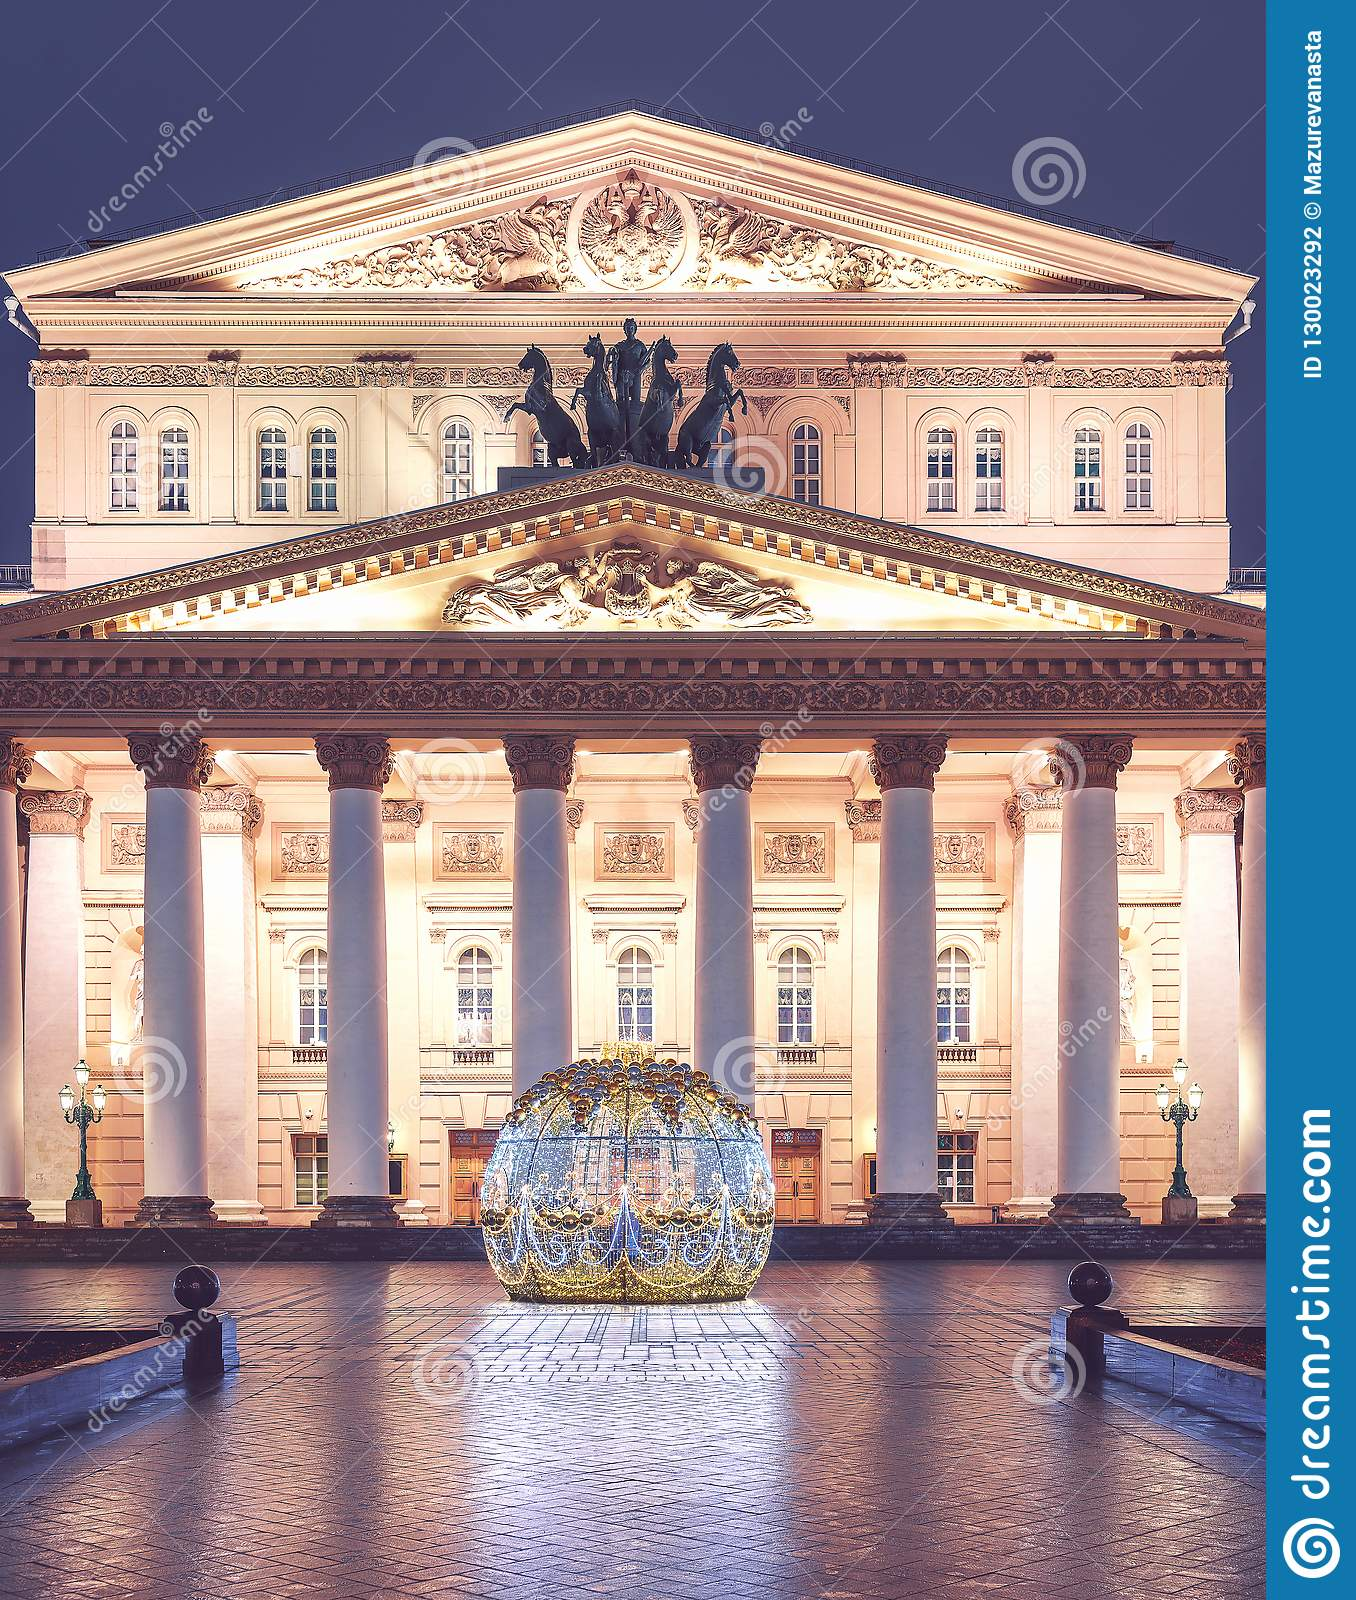 Uminous Christmas ball in front of the Bolshoi Theatre on Theatre Square. Moscow seasons. Winter. New Year`s scenery.